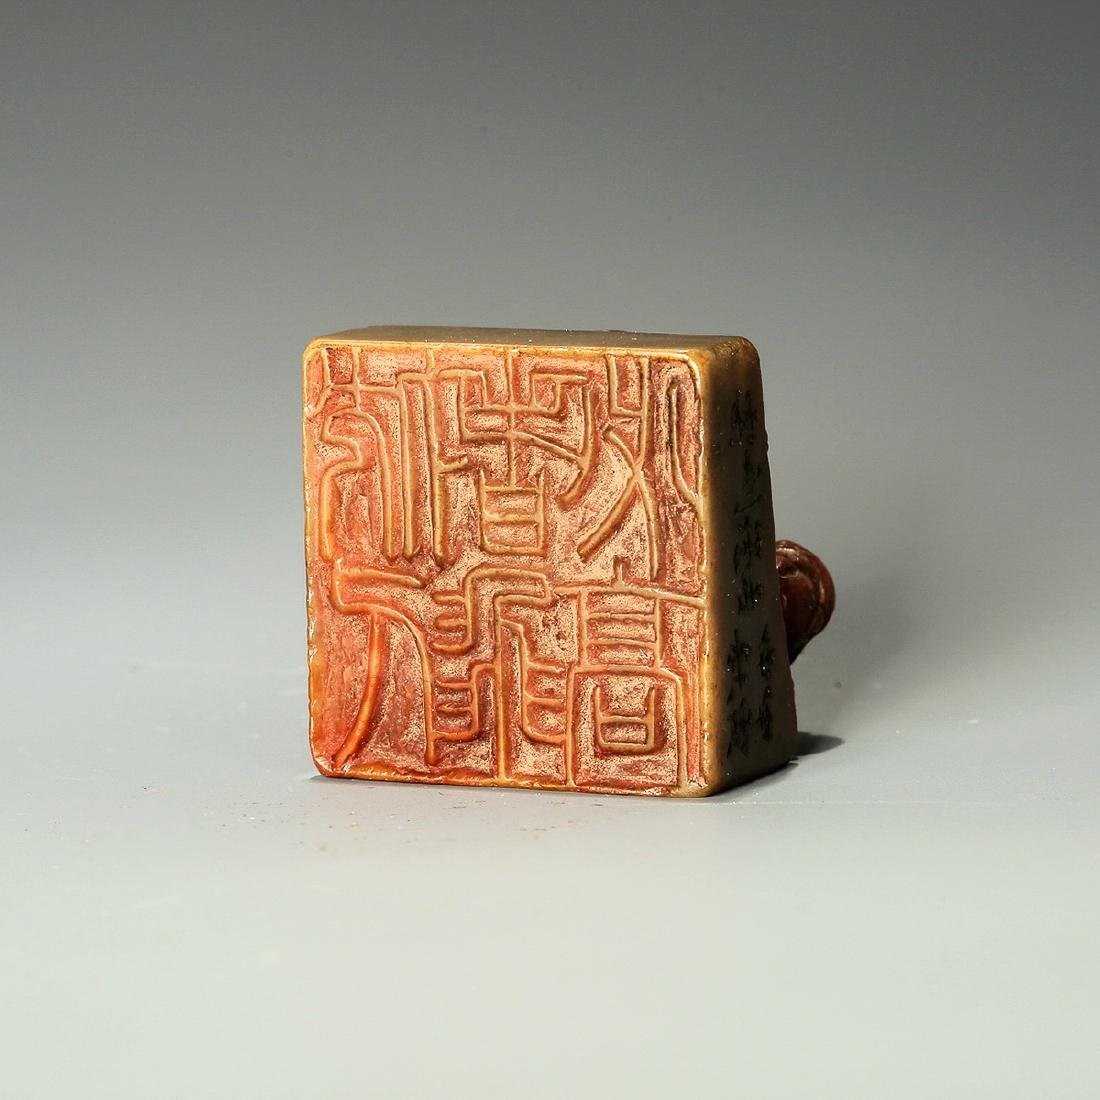 Qing Dynasty, A Qilin Hand-Carved Shoushan Stone Seal - 4